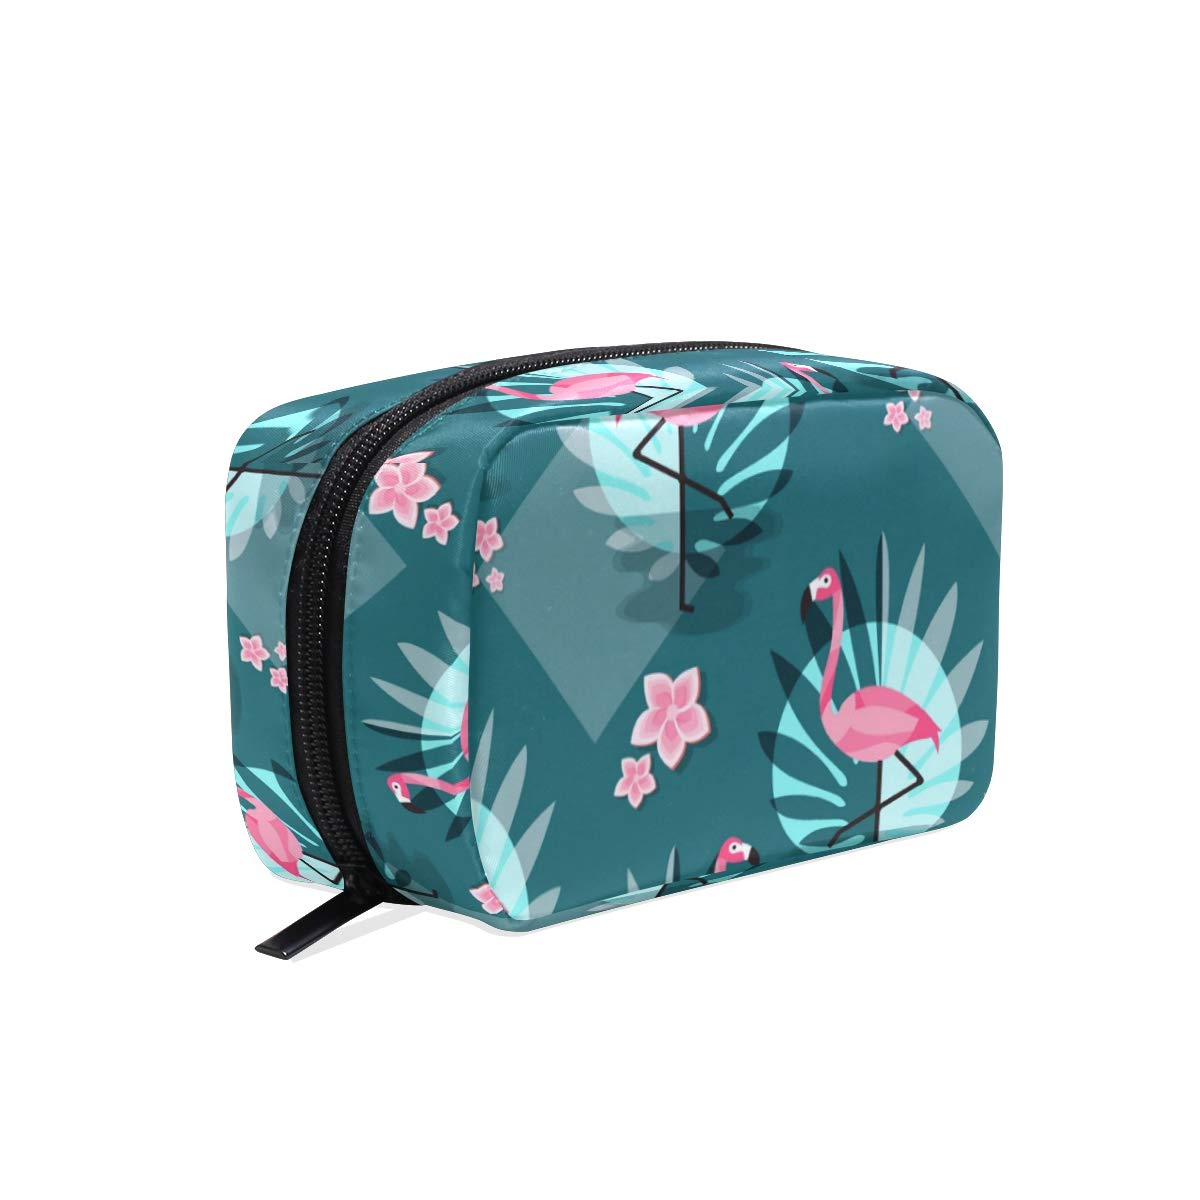 ILEEY Flamingo Flamenco Summer Pattern Cosmetic Pouch Clutch Makeup Bag Travel Organizer Case Toiletry Pouch for Women